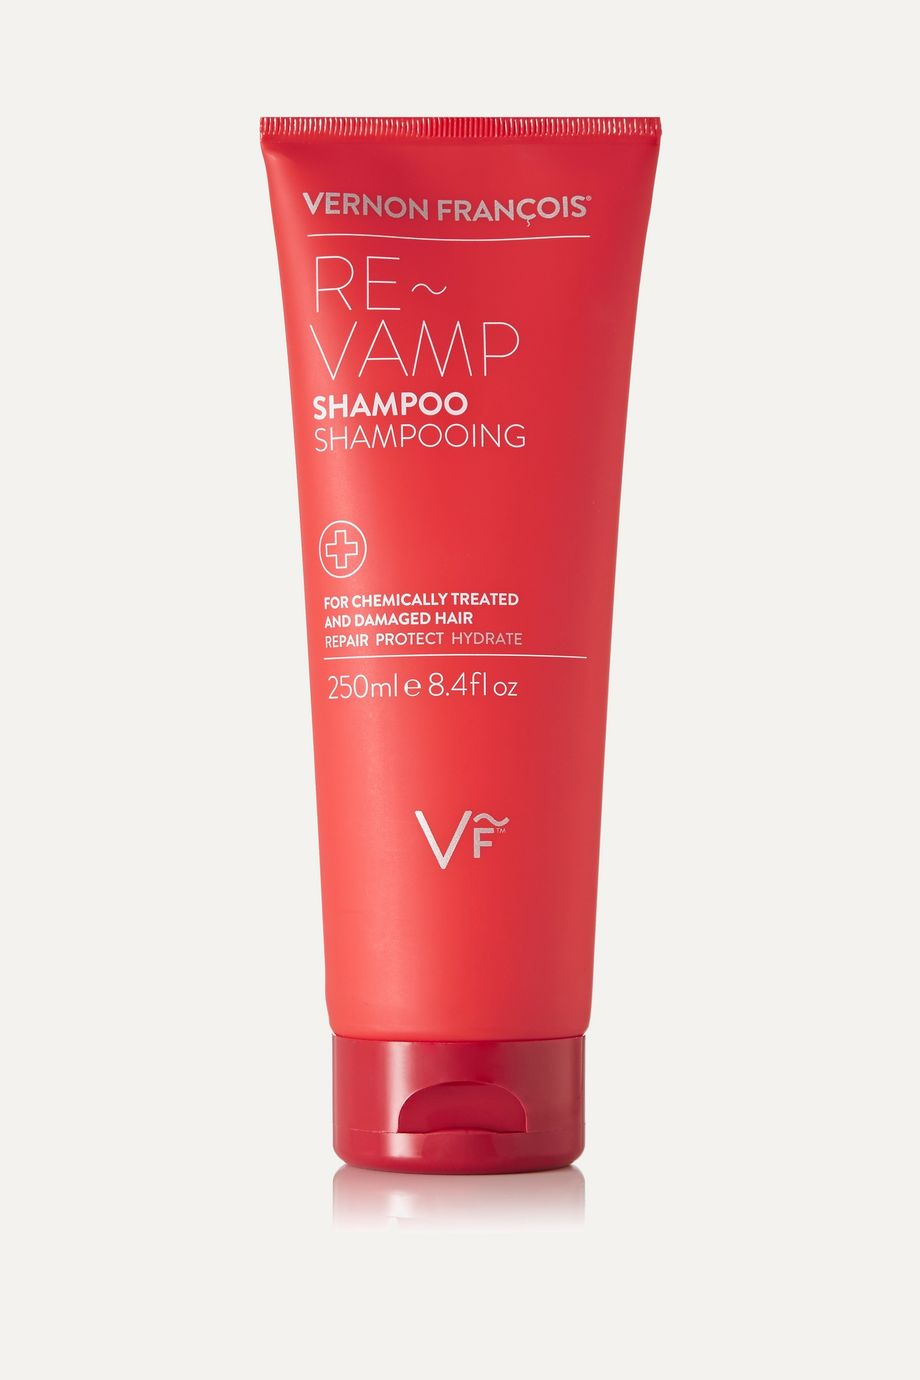 Vernon François Re-Vamp™ Shampoo, 250ml